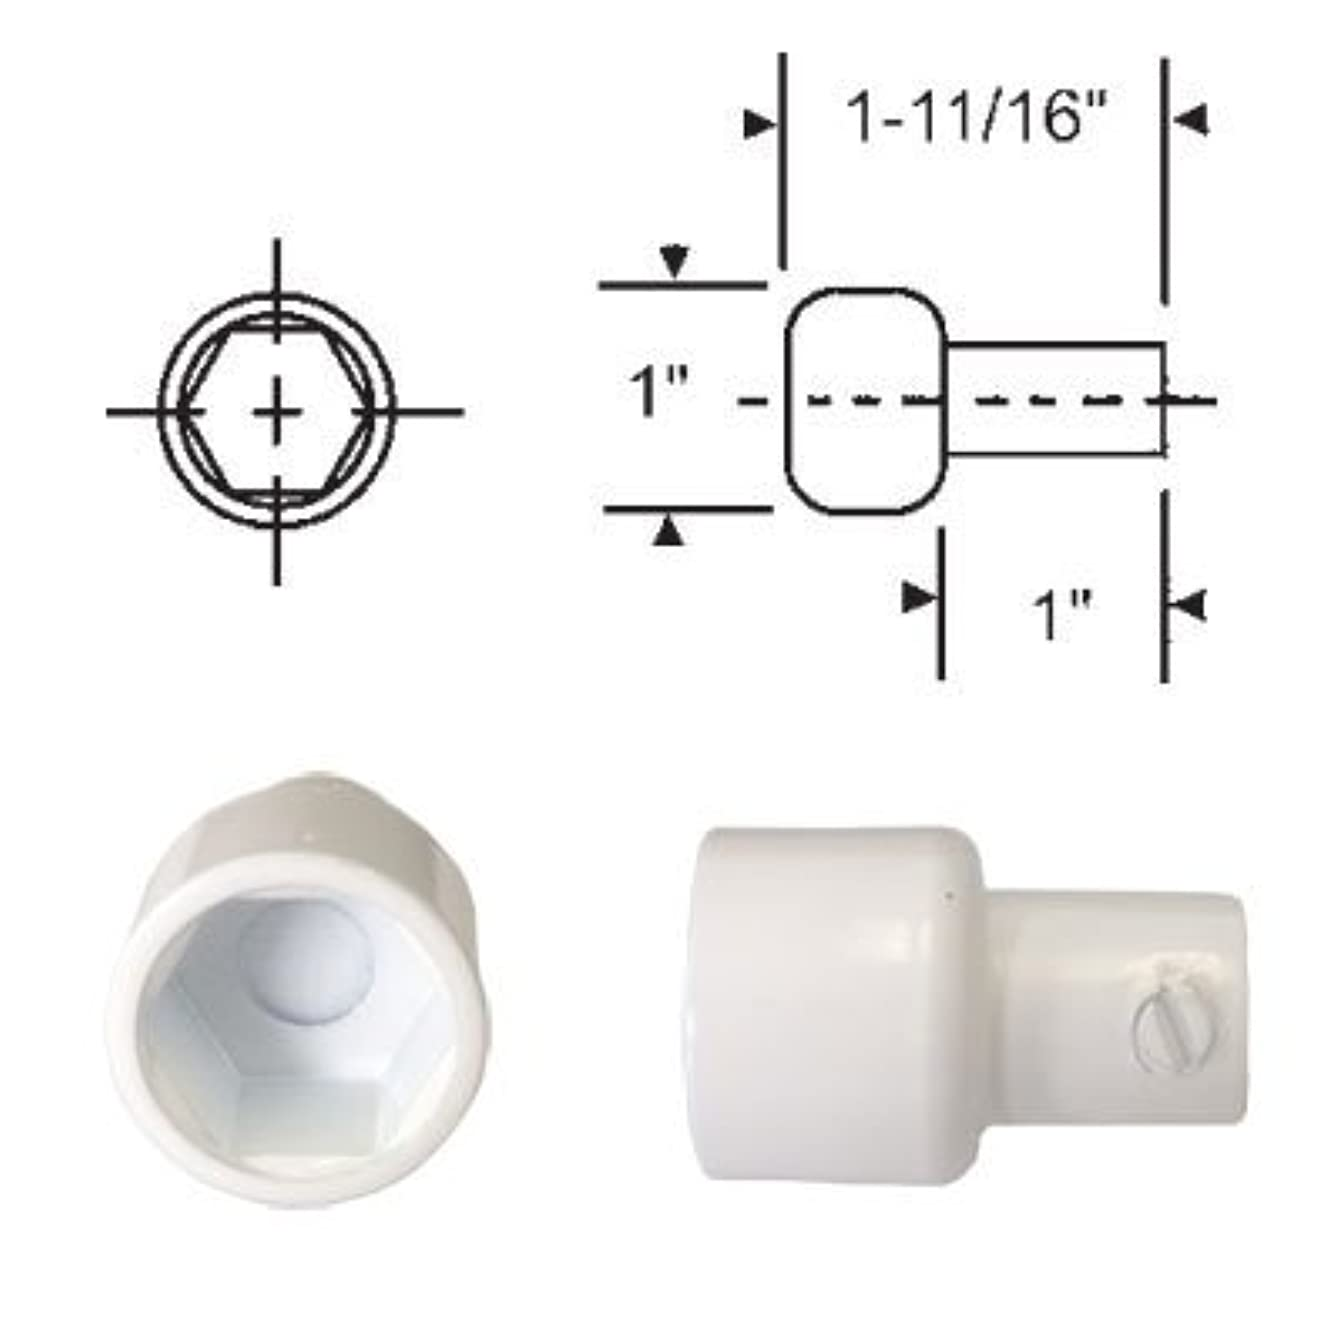 Replacement Hex Ball Adaptor for Skylight and Awning Window Operators, White